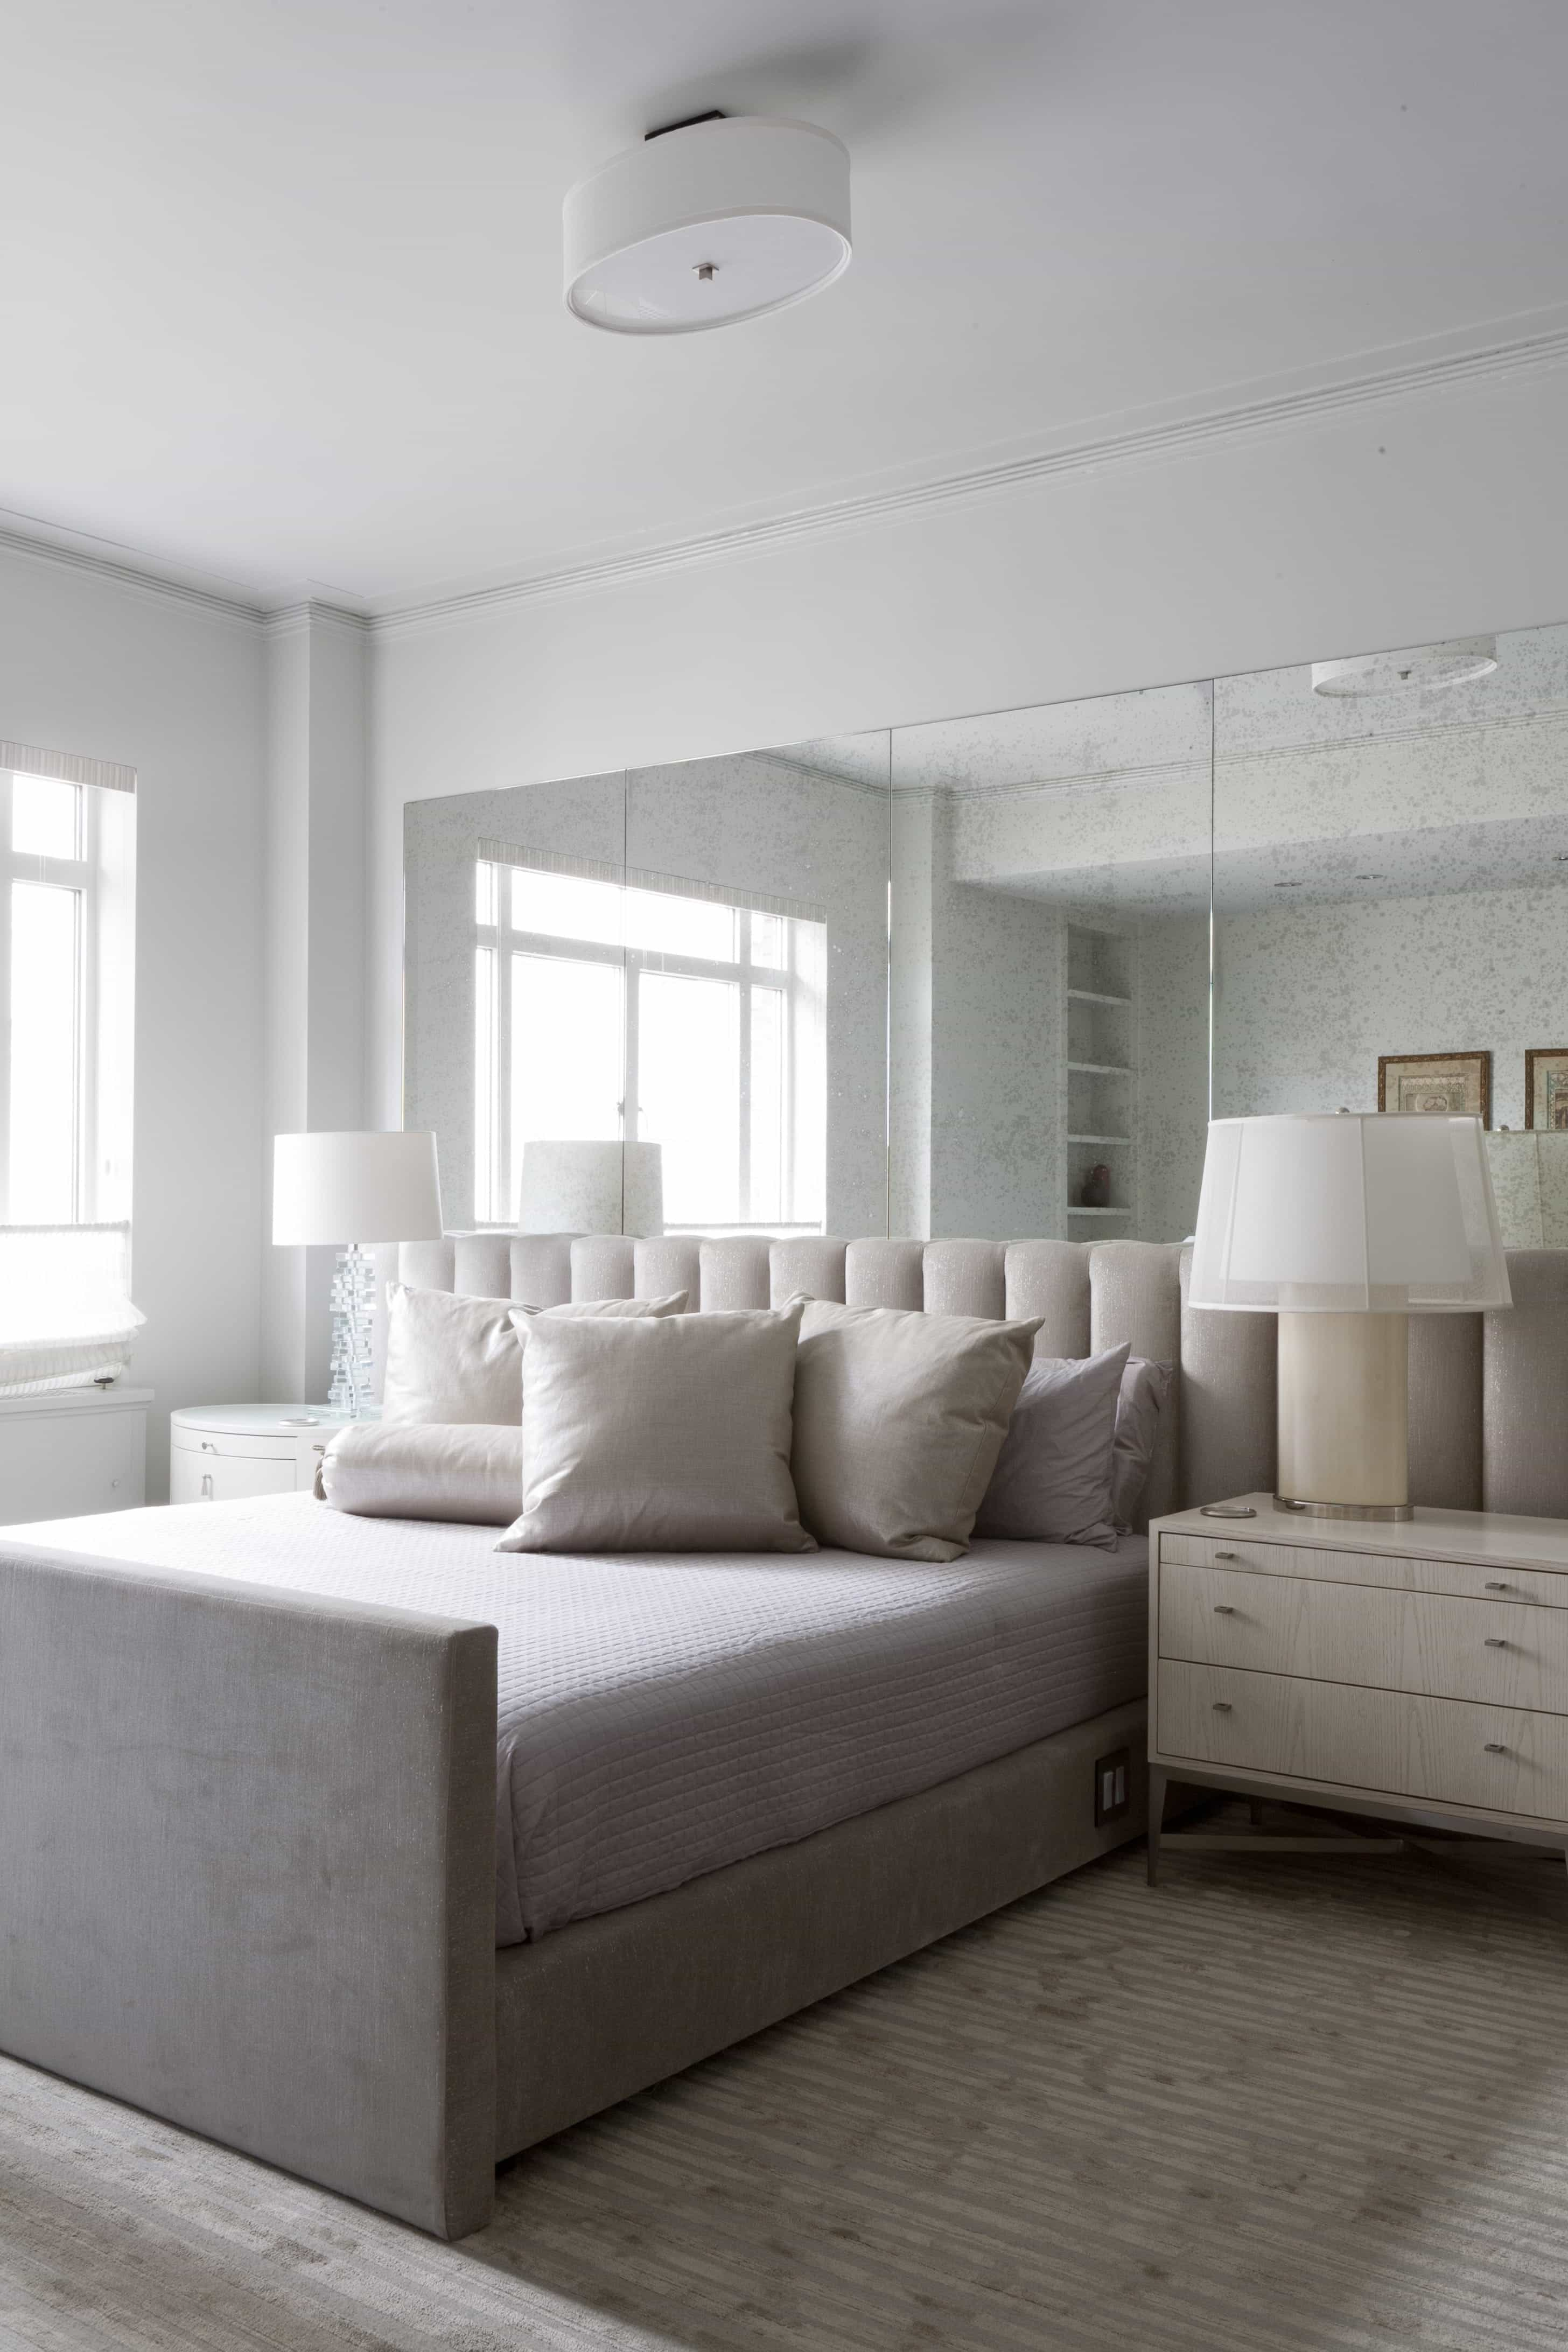 White Bedroom With Mirrored Accent Wall (Image 27 of 28)